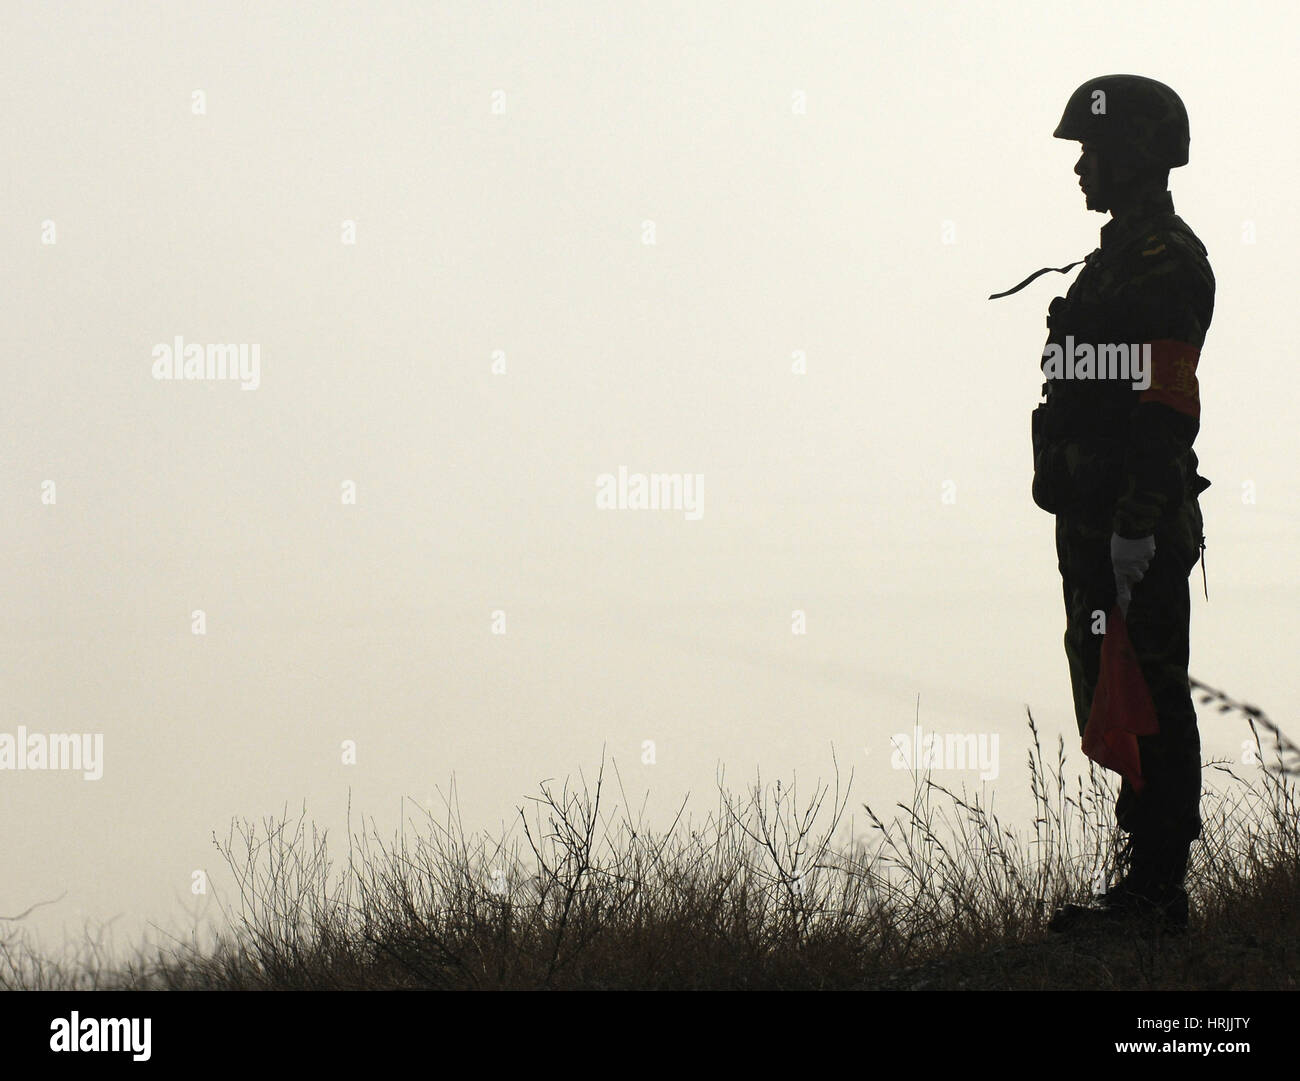 Chinese Soldier, People's Liberation Army, 2007 Stock Photo